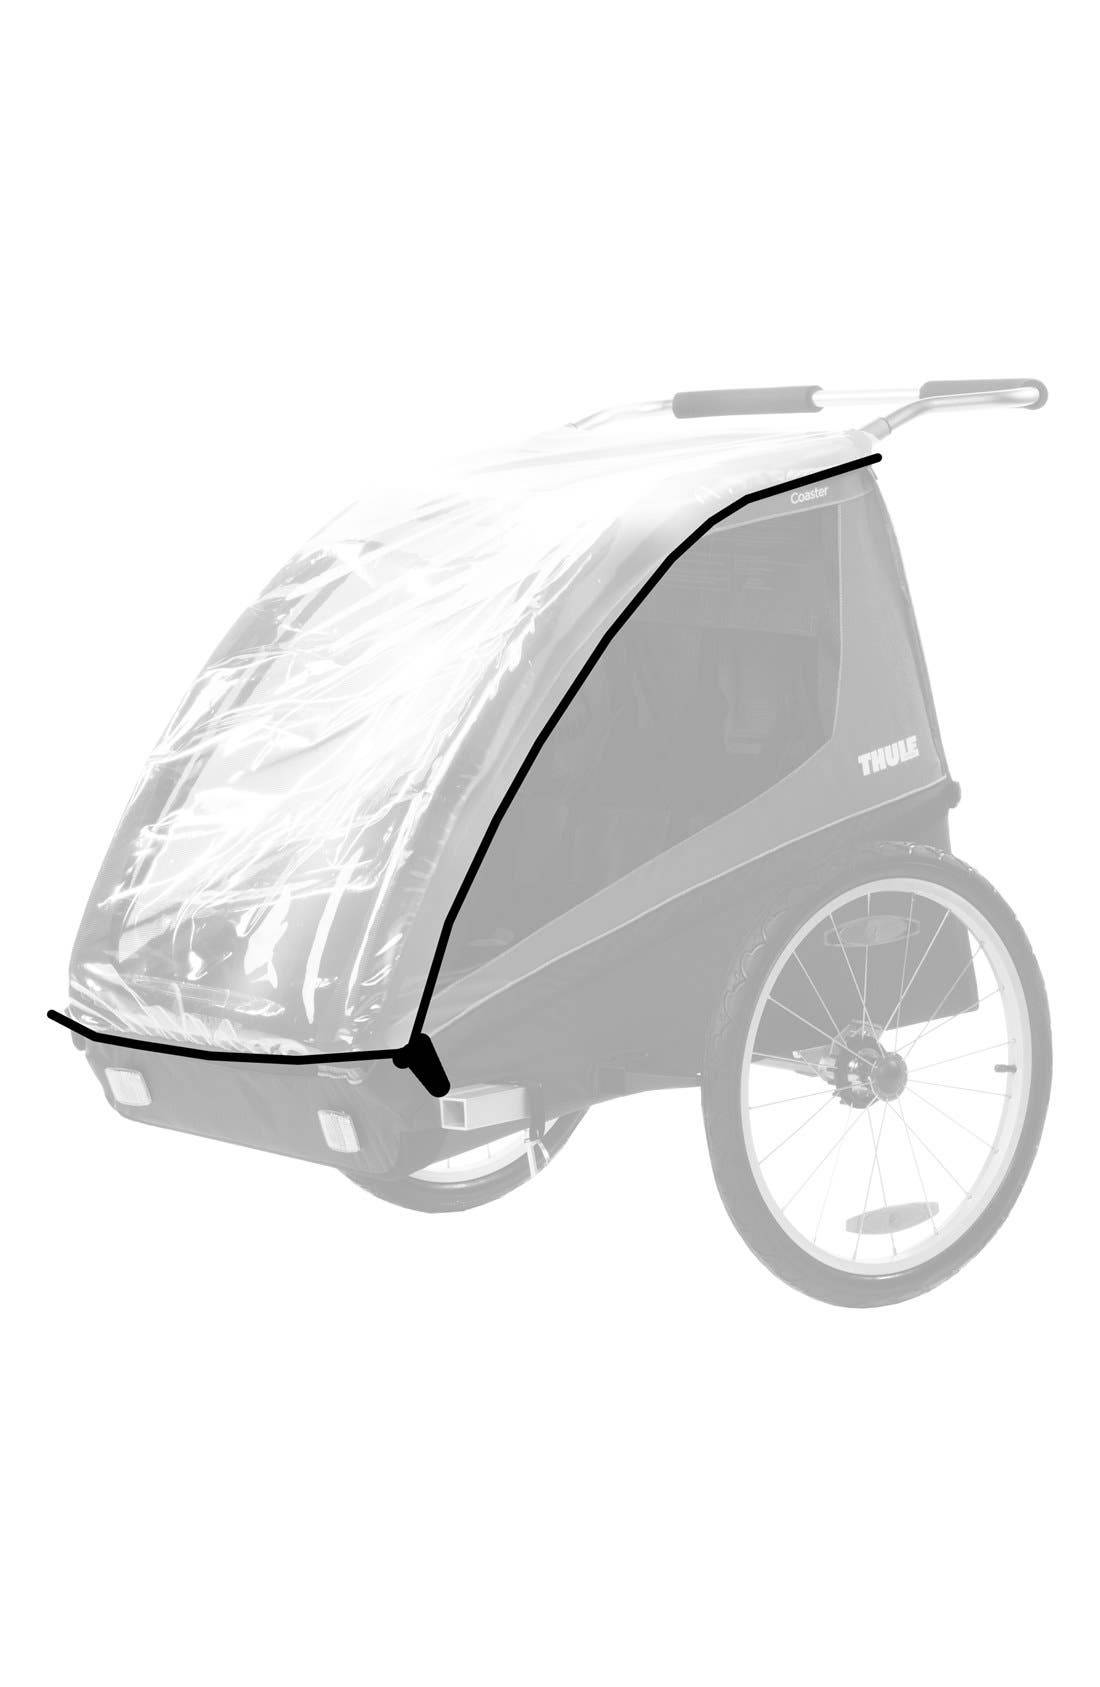 Thule Infant Thule Protective Rain Cover For Coaster/cadence Bike Trailer, Size One Size - Black